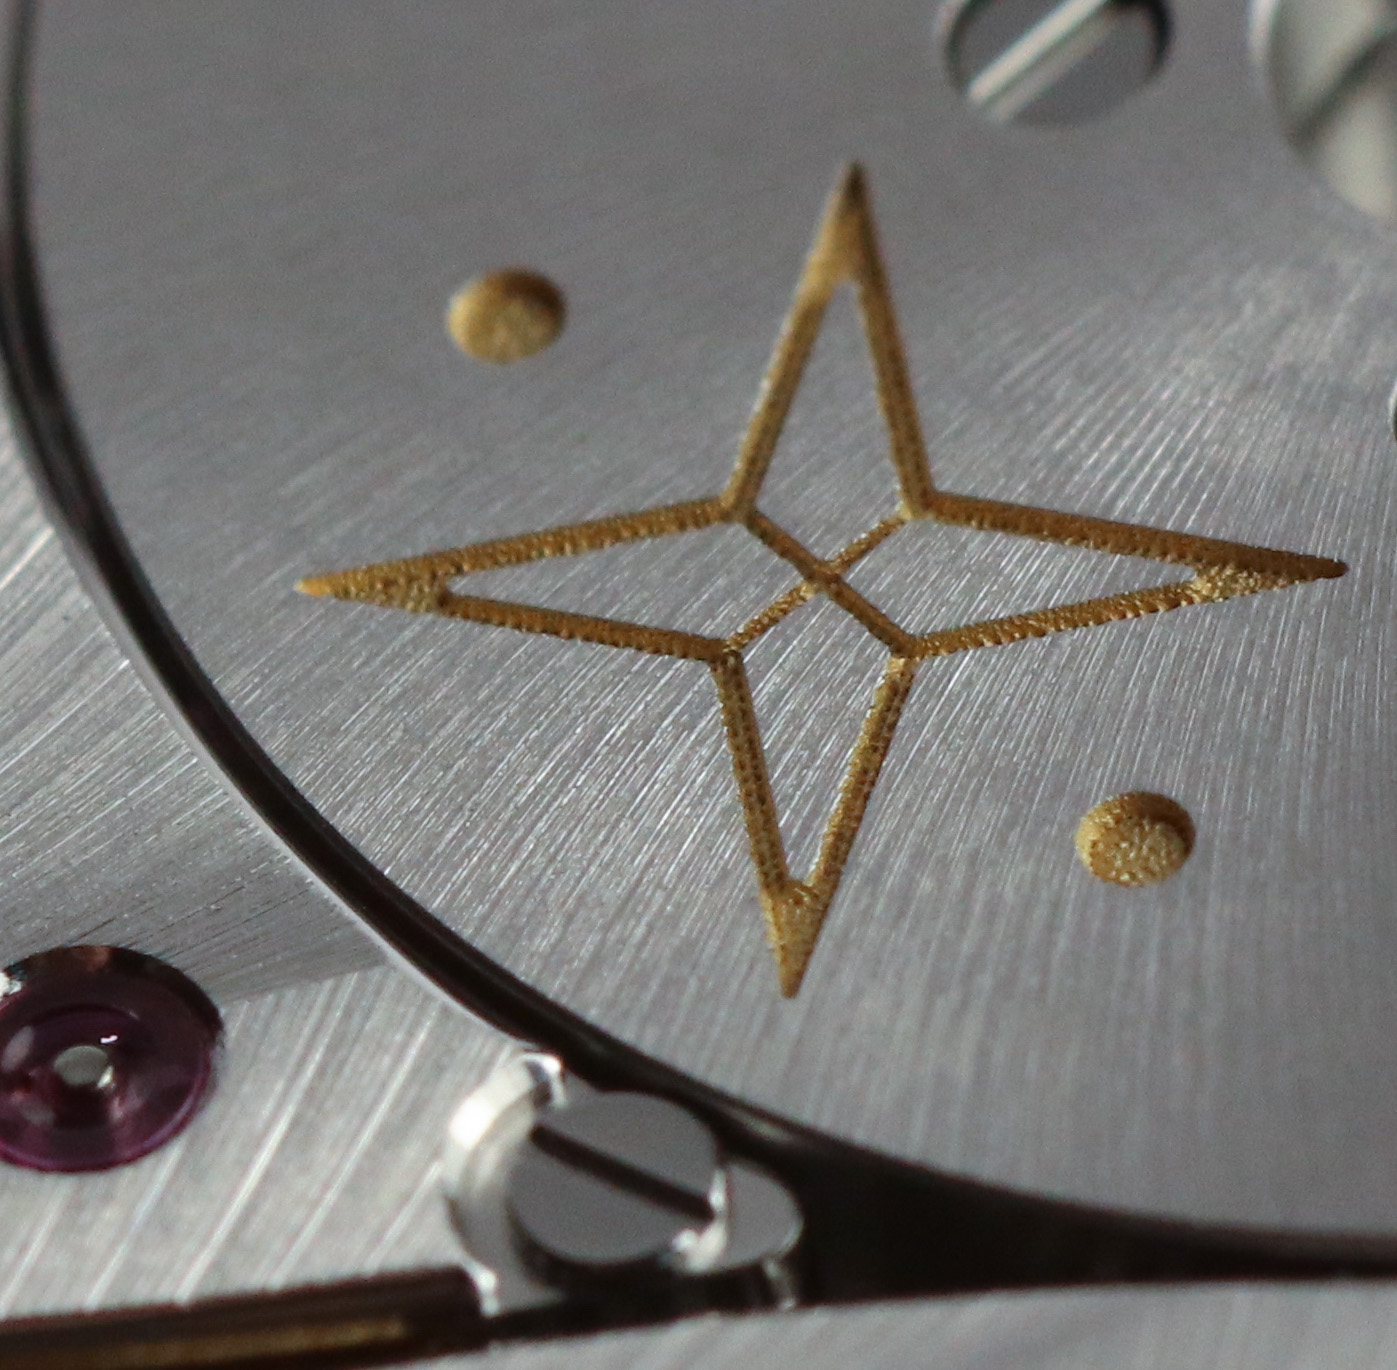 The Vaucher logo chemically etched into the tungsten rotor weight